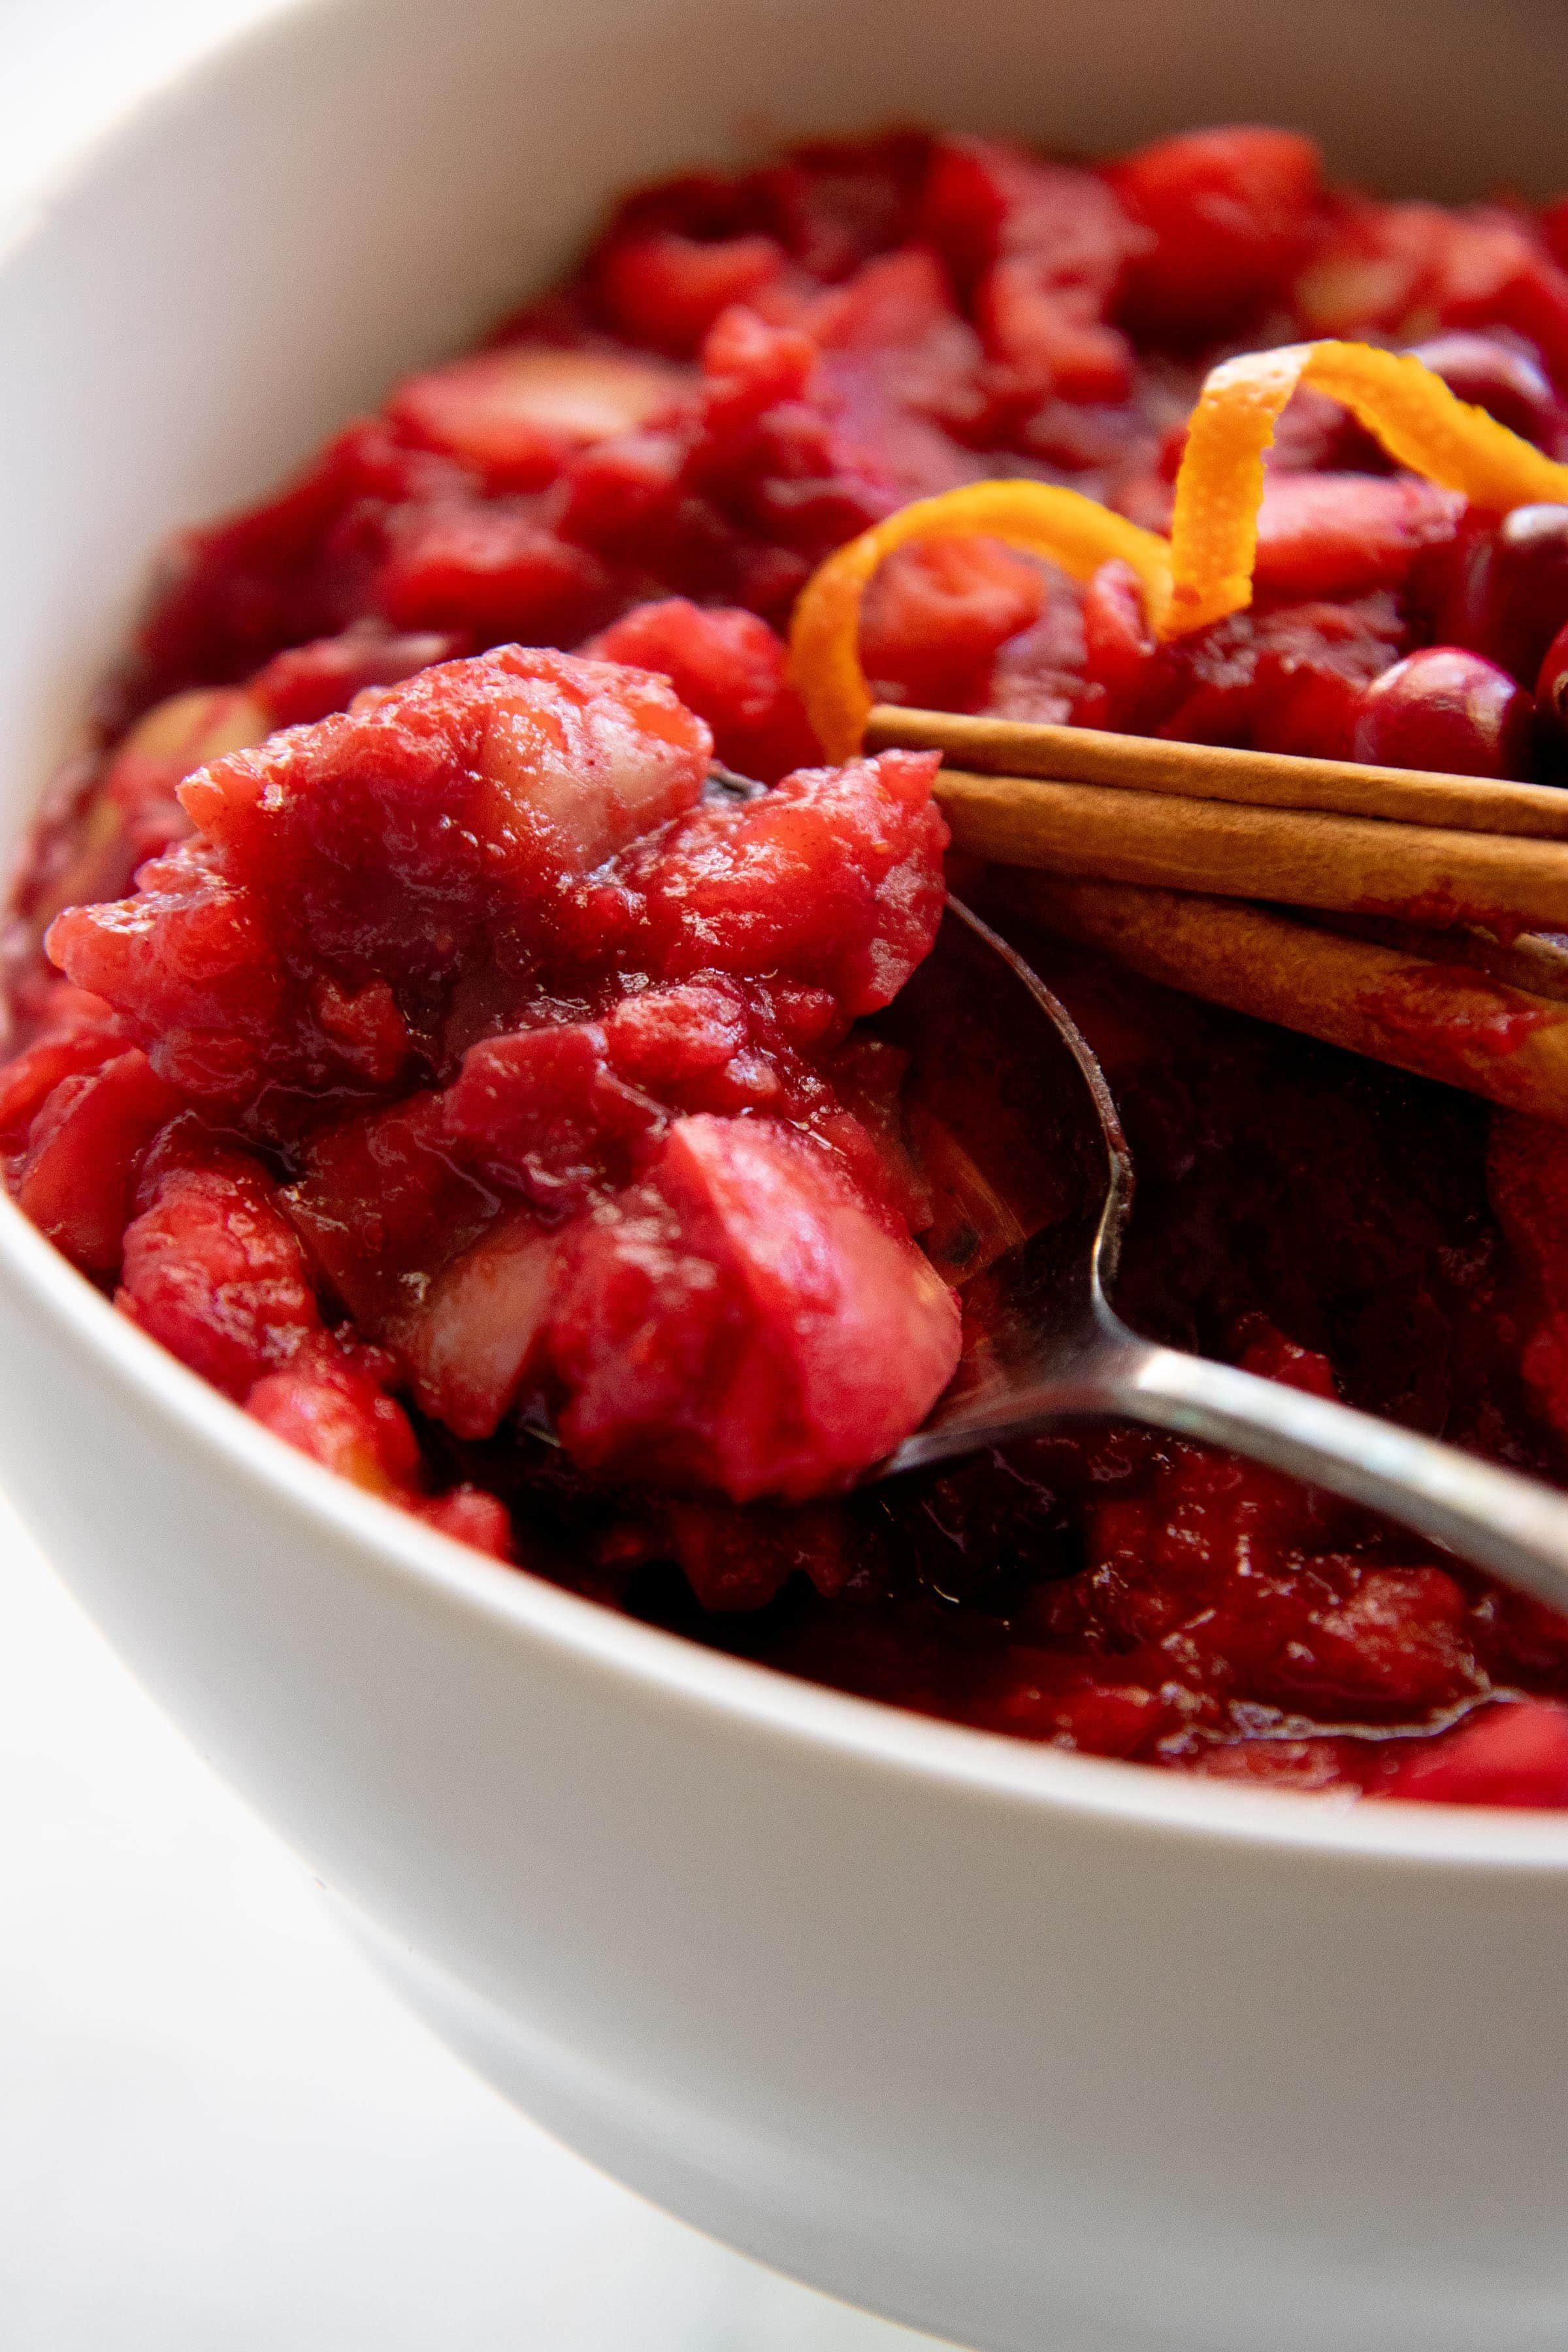 Spoon dipping into a white bowl of Chunky Cranberry Applesauce